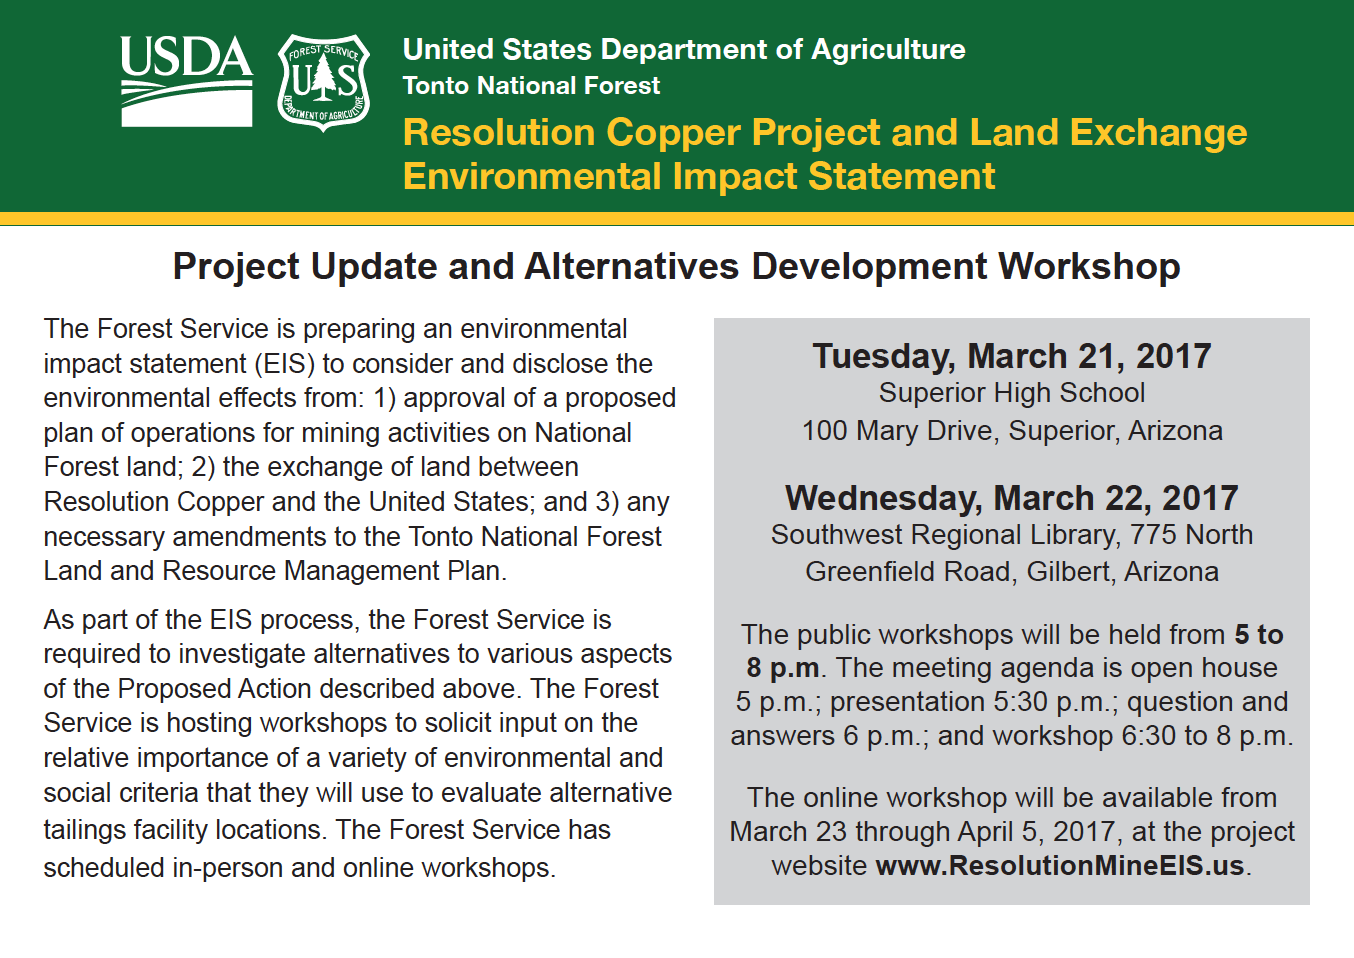 Thumbnail image of document cover: Project Update and Alternatives Development Workshop Postcard